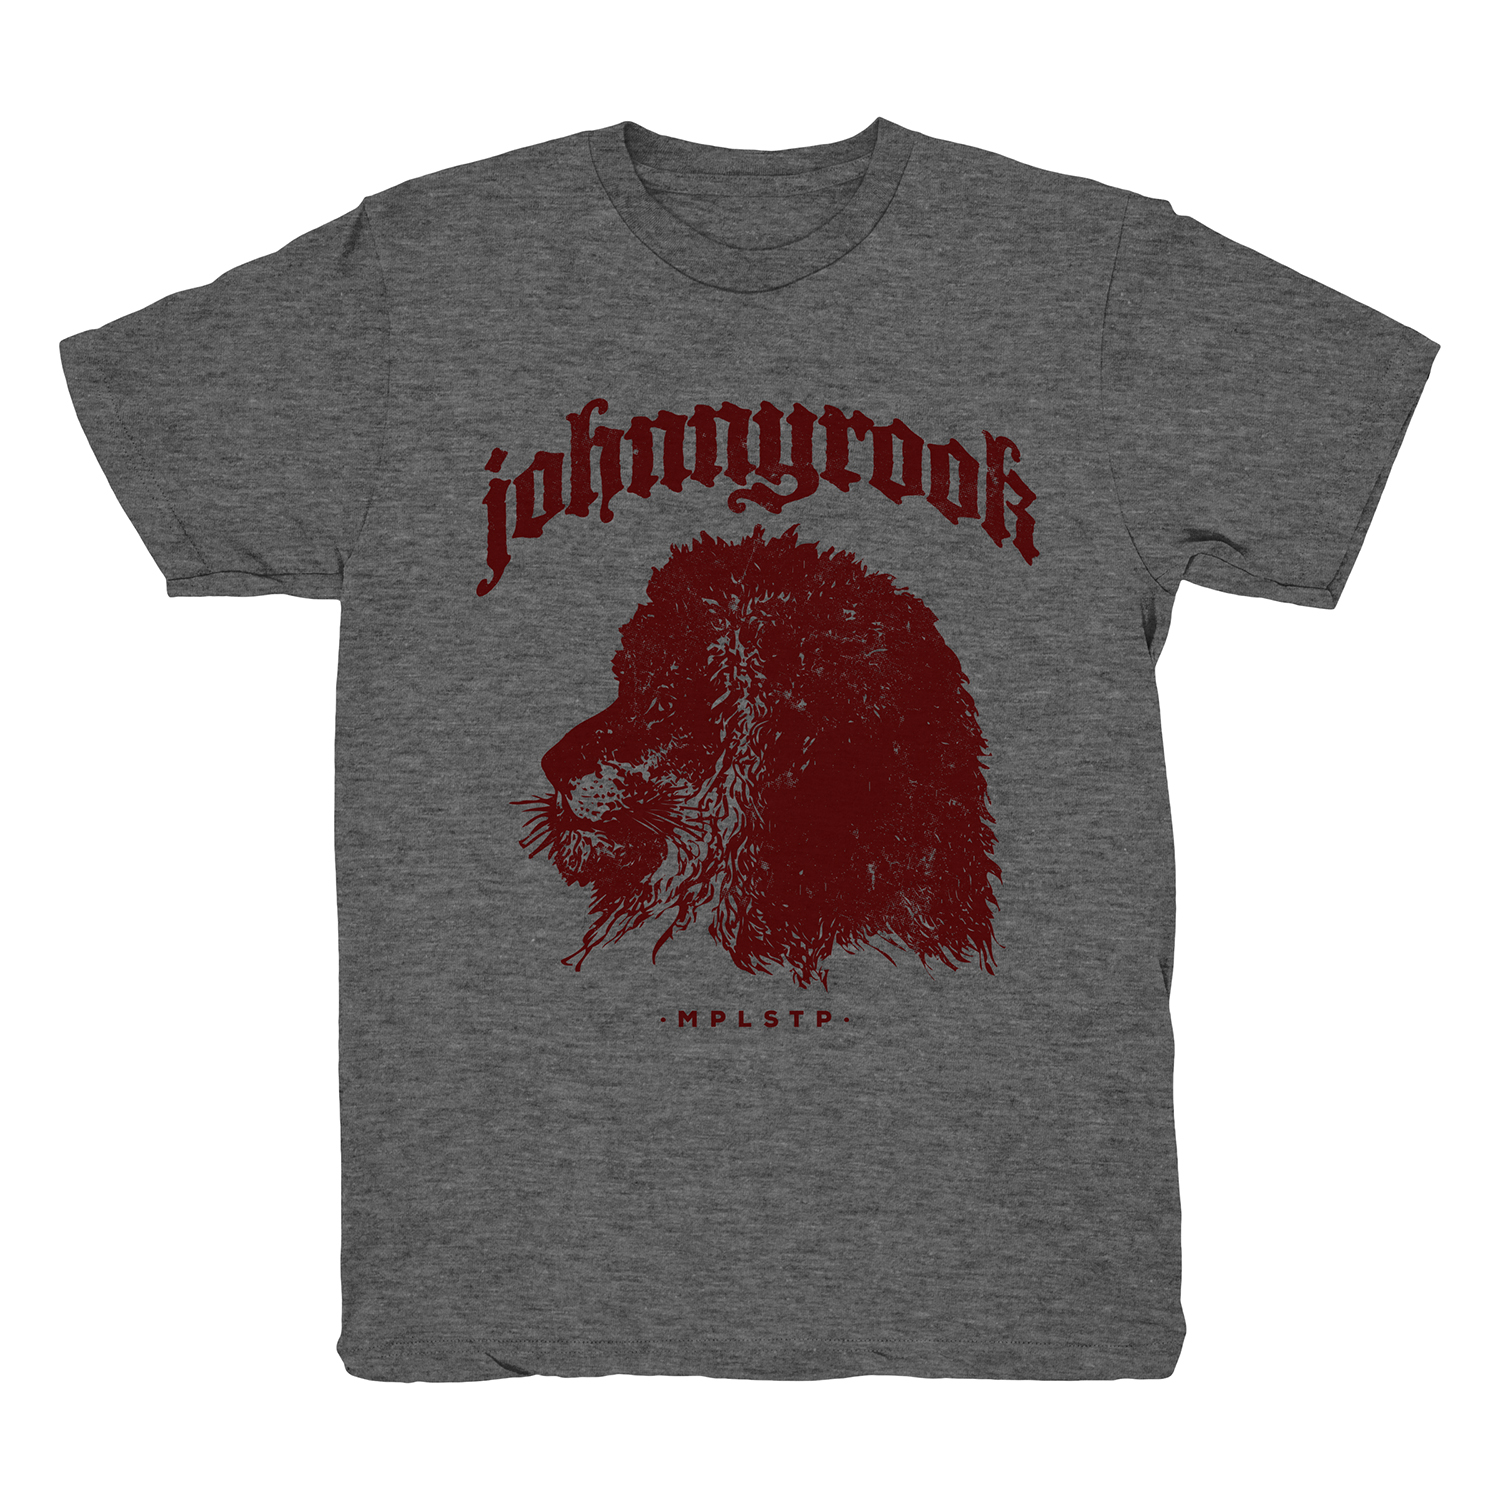 Johnnyrook Lion Tee - Deep Heather / Maroon